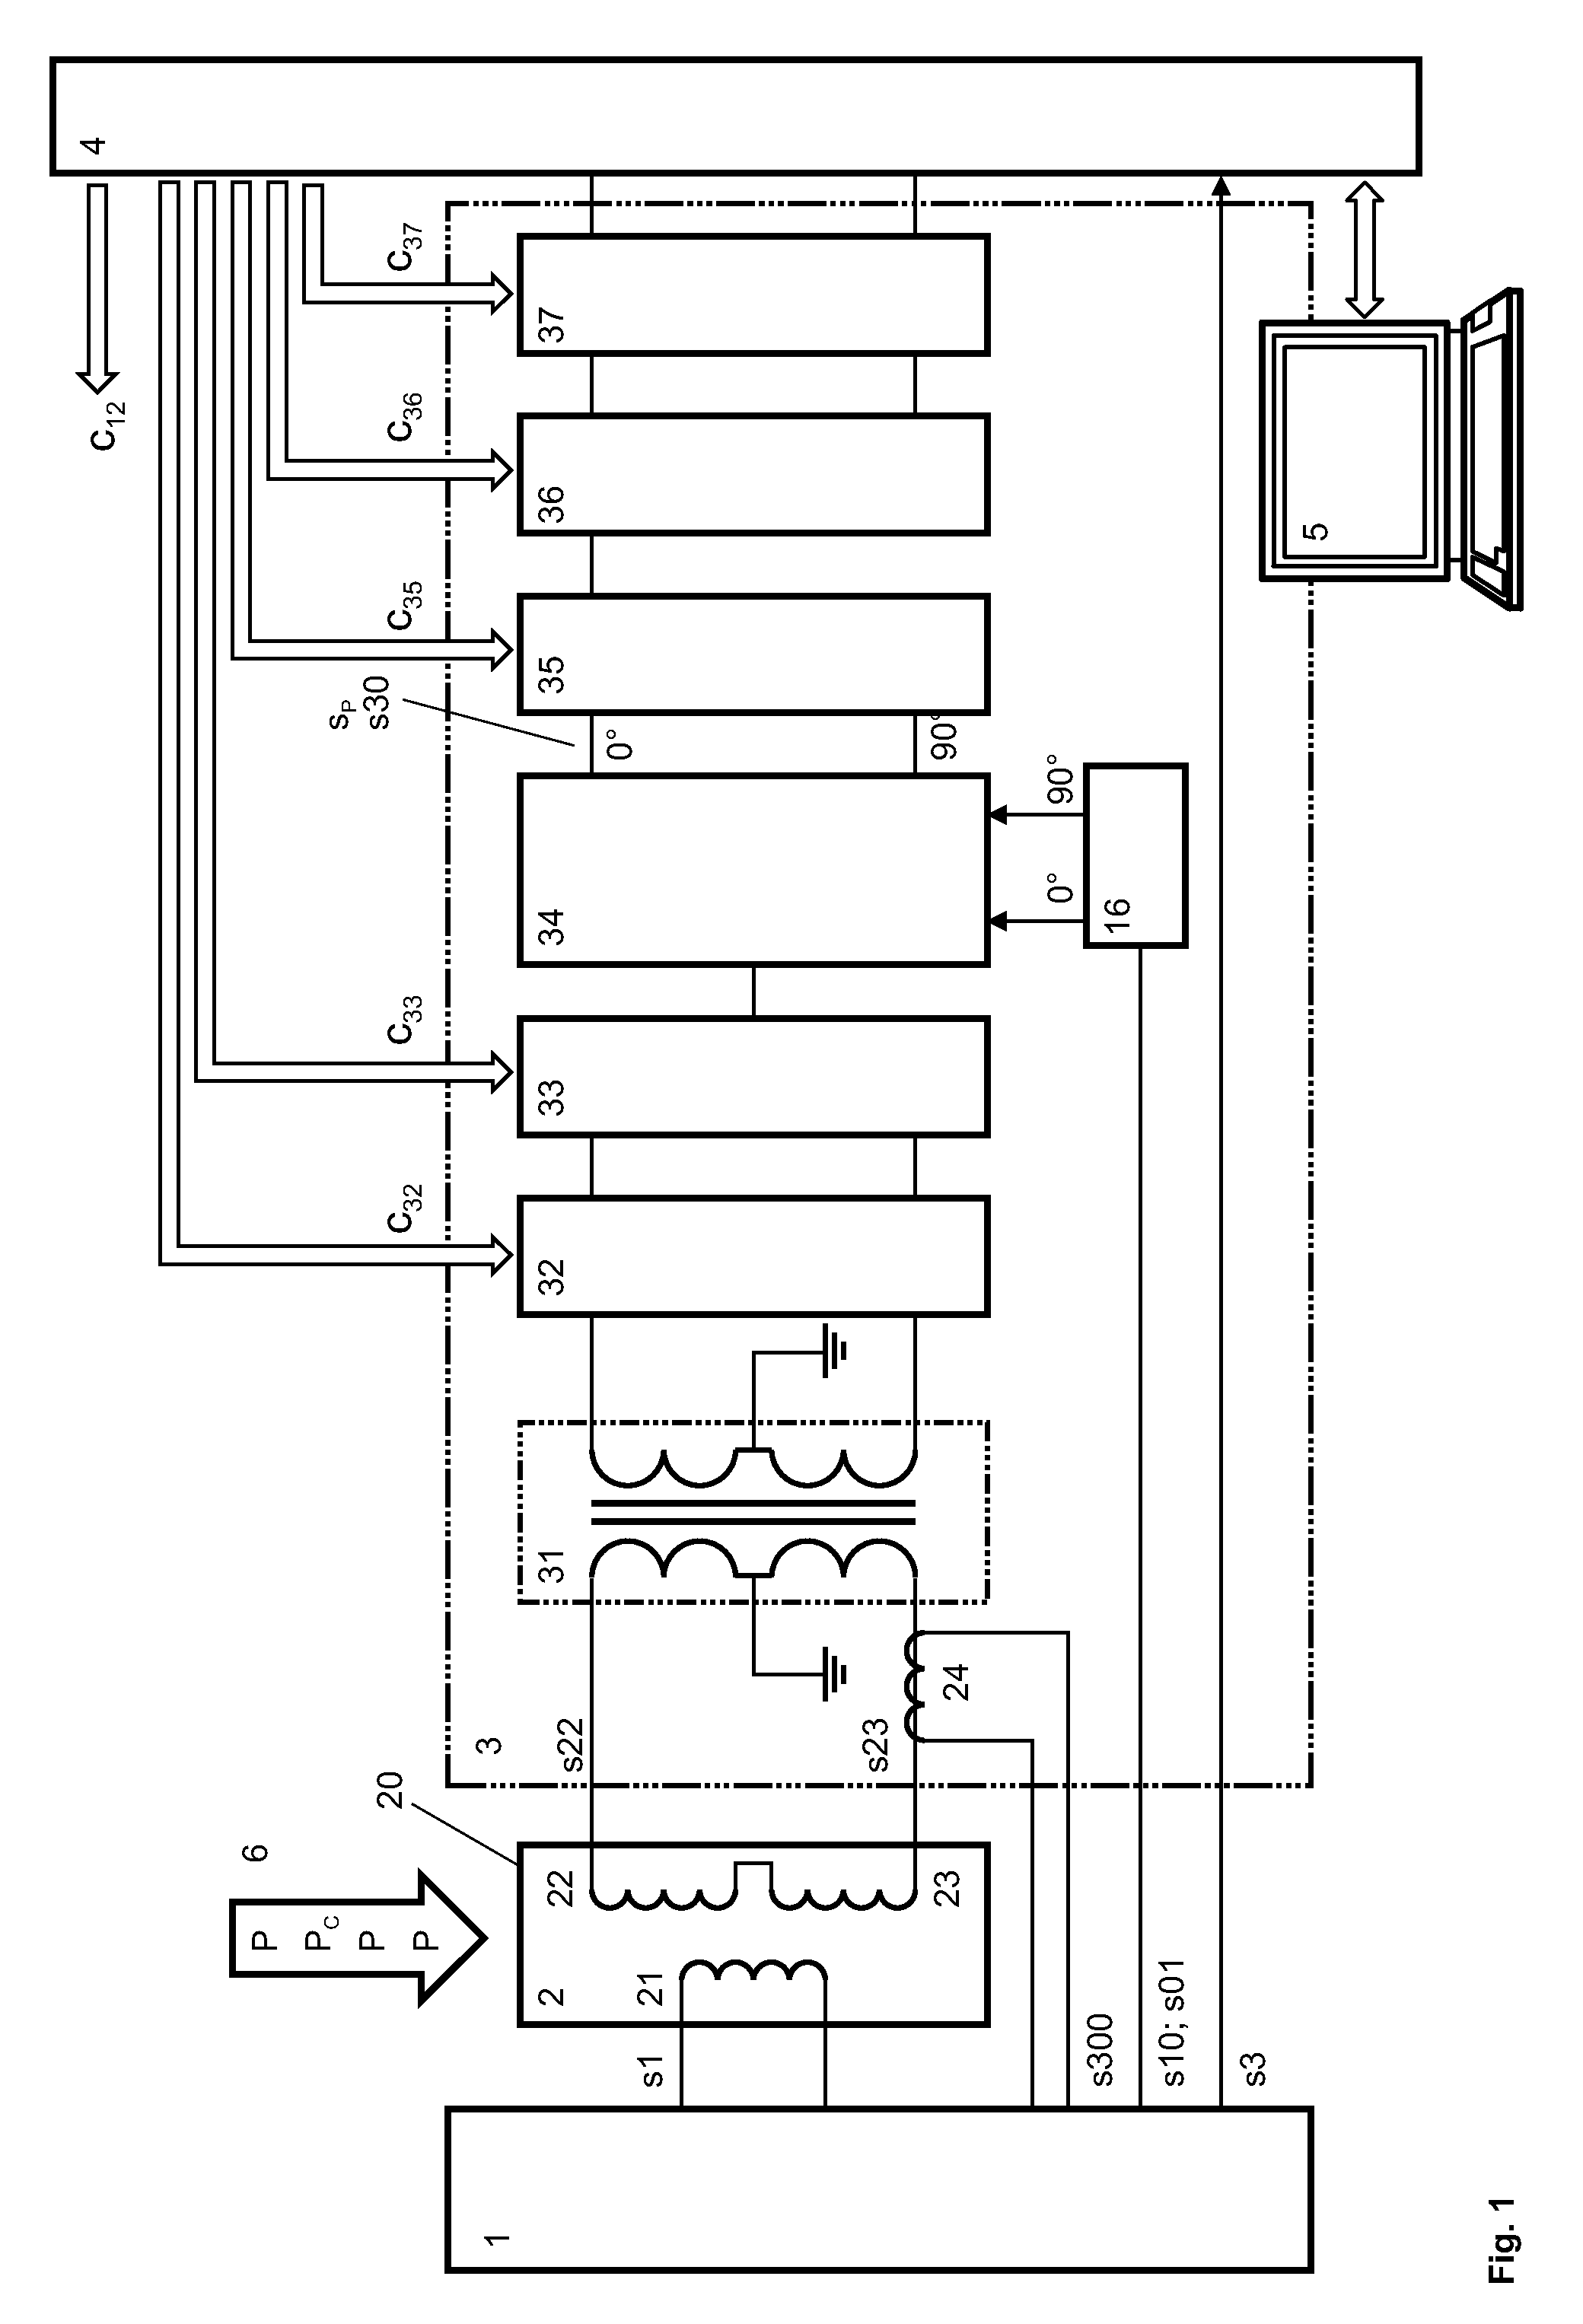 Safeline Metal Detector Wiring Diagram 38 Images Mettler Toledo Us08314713 20121120 D00001 Patent Us8314713 Method For Monitoring The Operation Of A